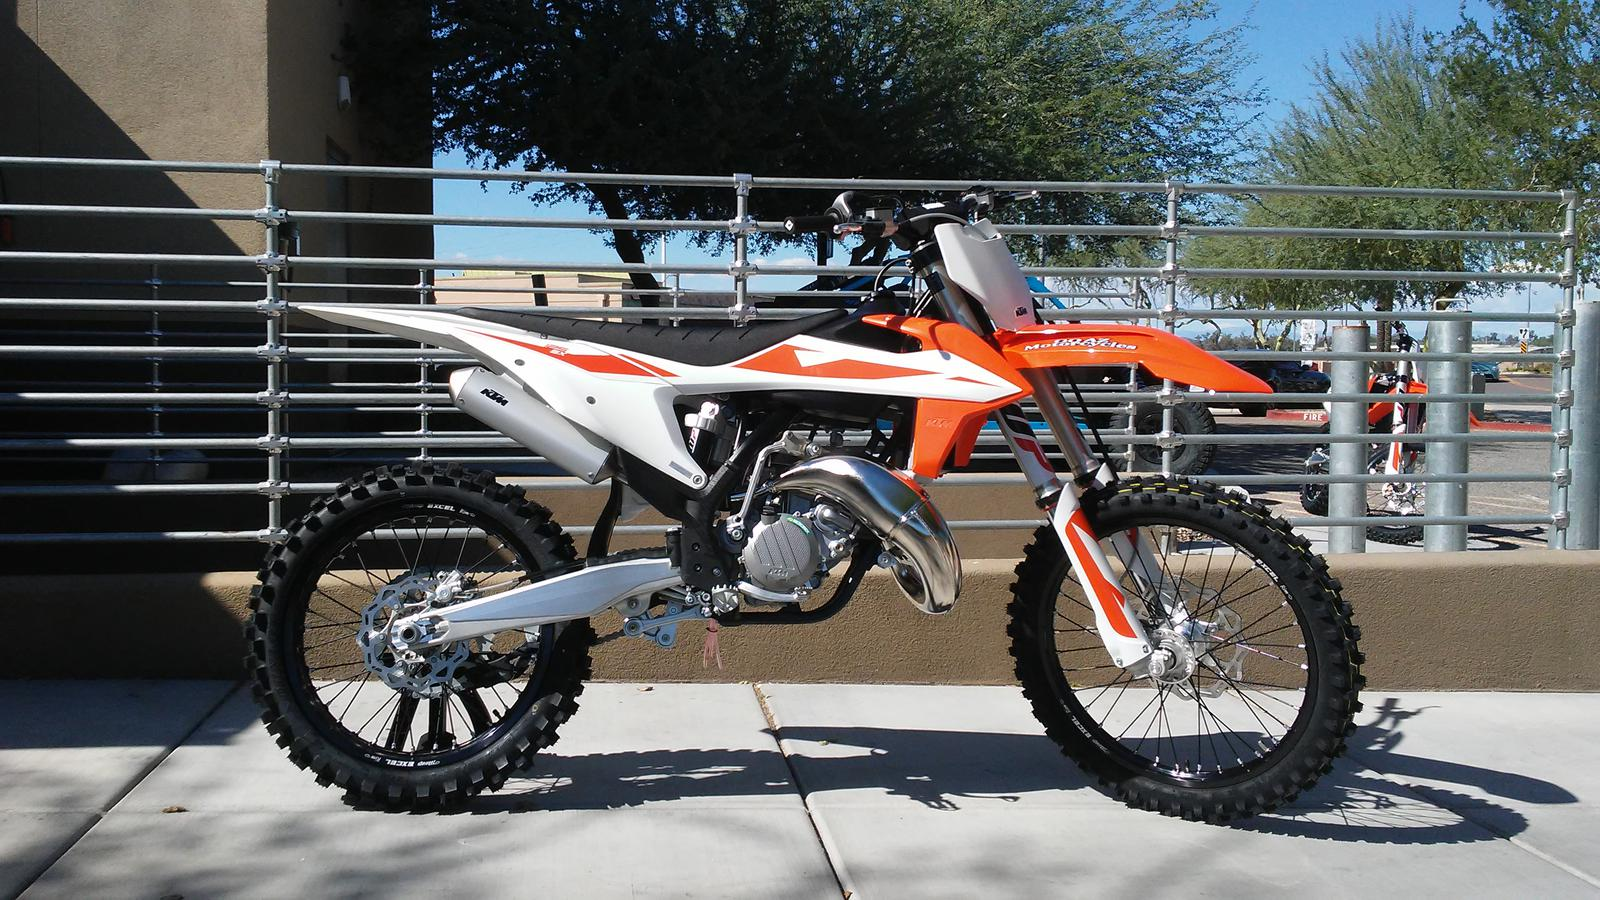 2019 KTM 125 SX for sale in Peoria, AZ | GO AZ Motorcycles